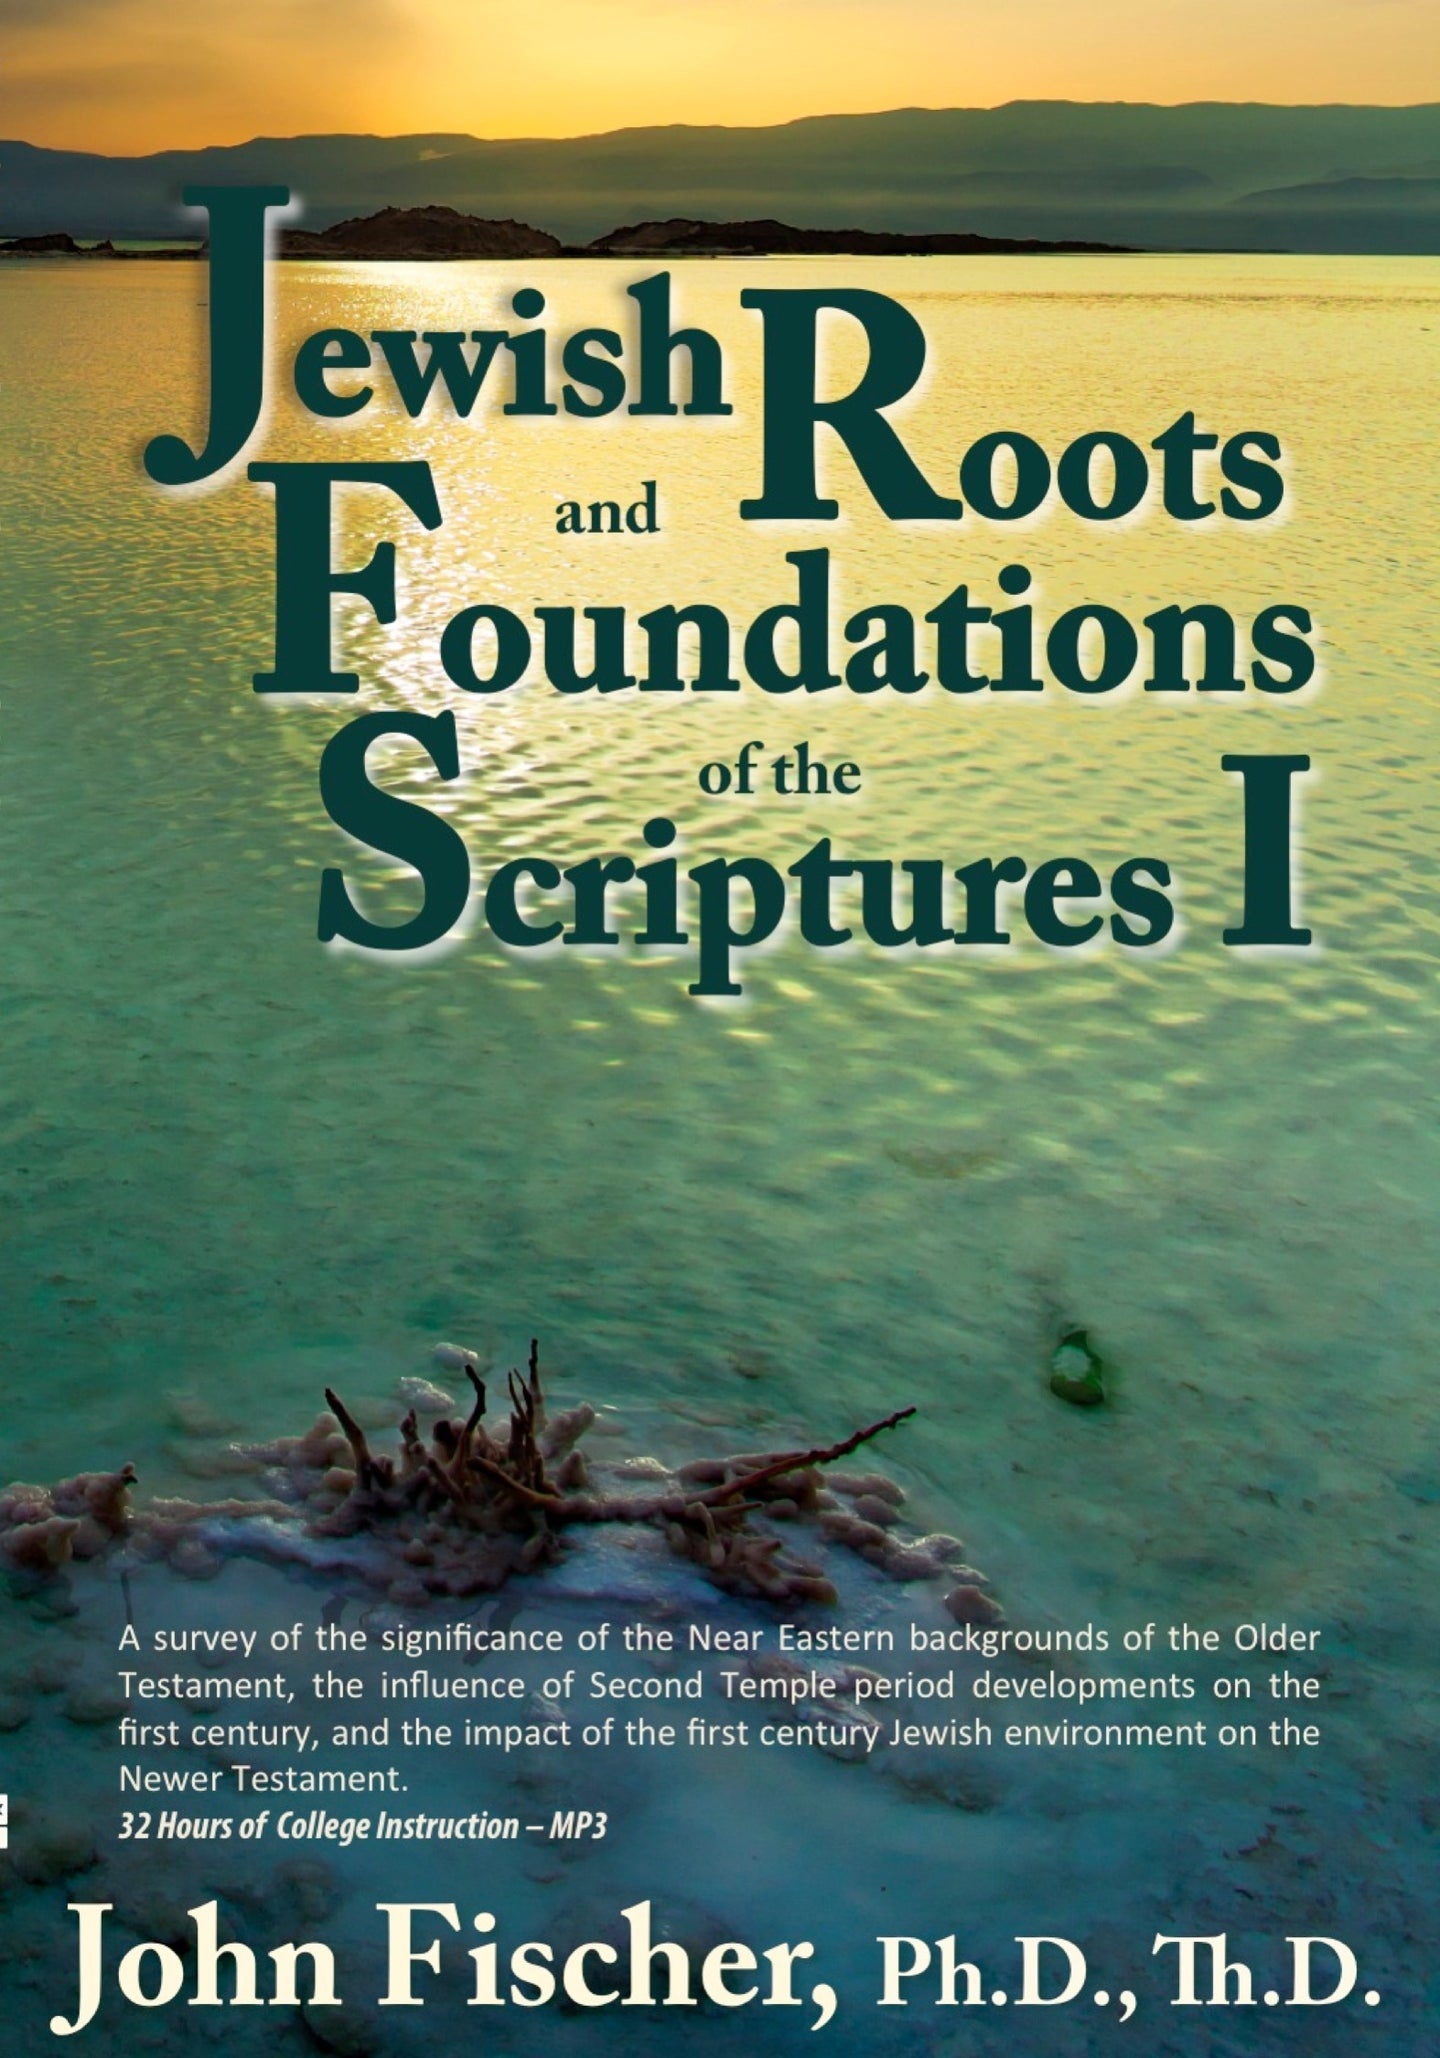 Jewish Roots and Foundations of the Scriptures 1 by John Fischer, PhD, ThD